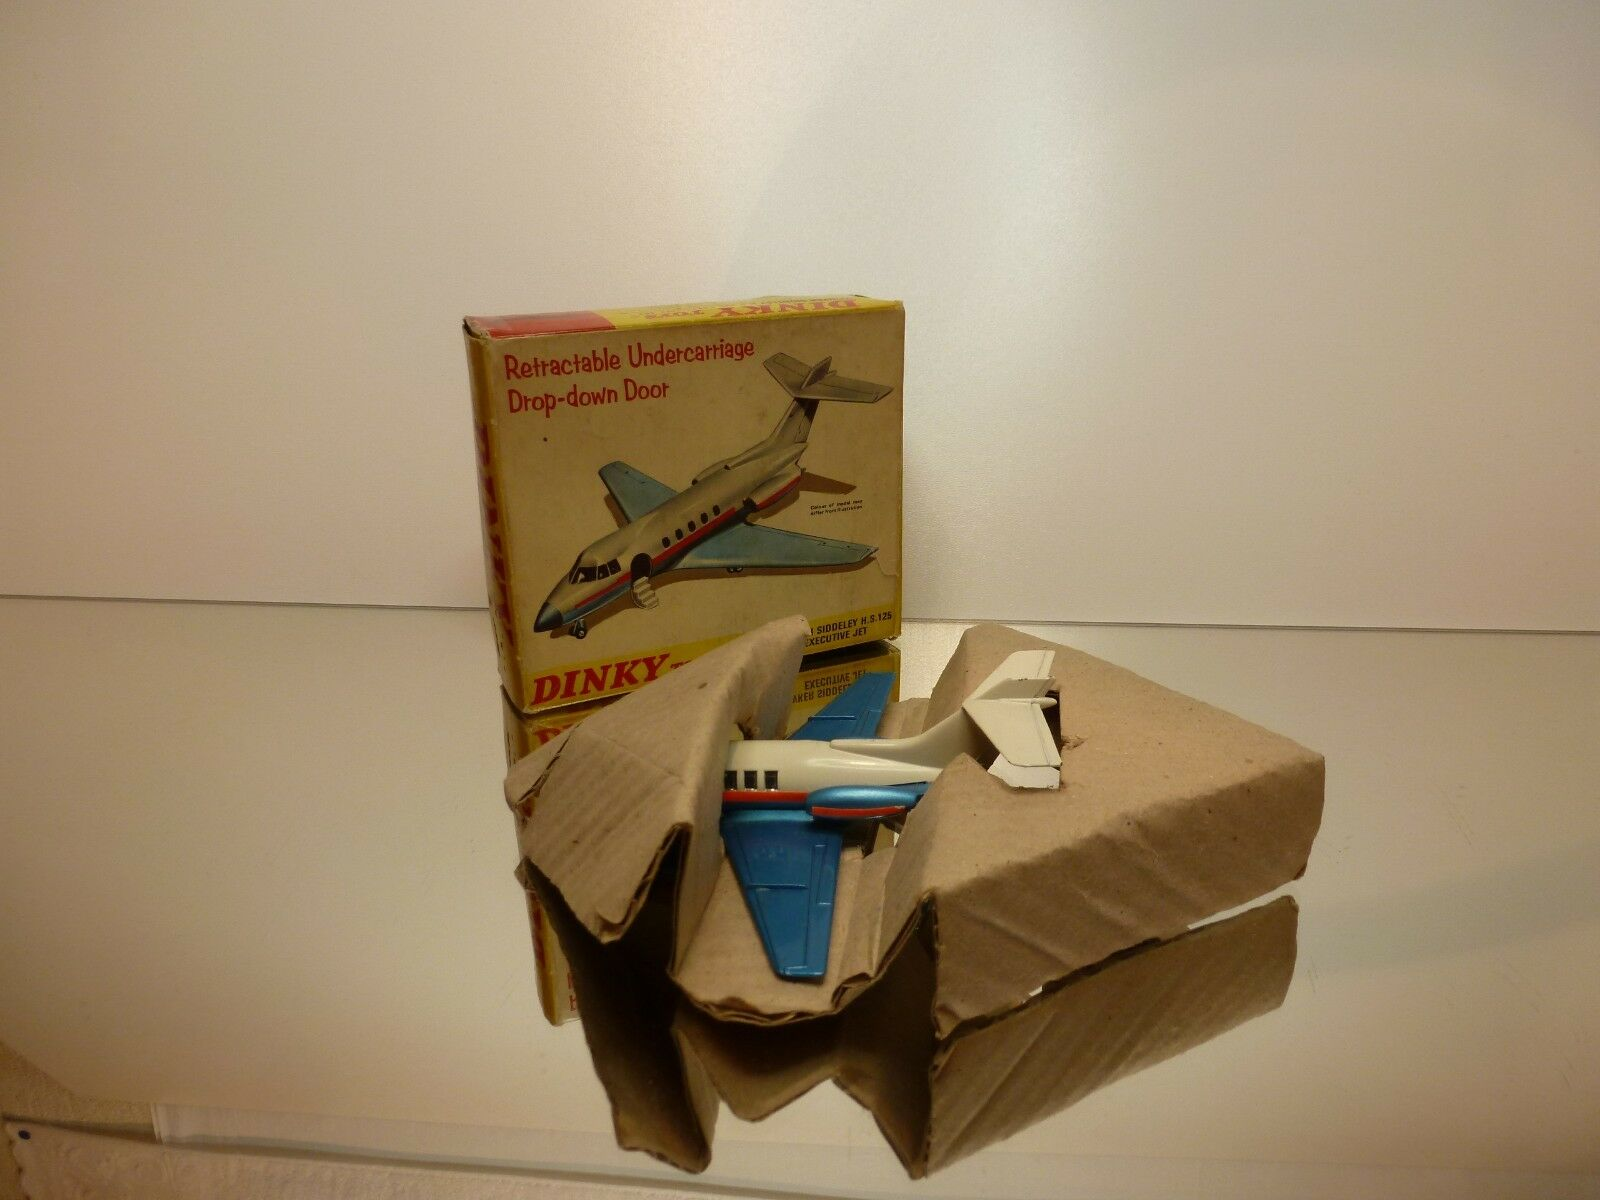 DINKY DINKY DINKY TOYS  723 HAWKER SIDDELEY 125 - WHITE + blueE - GOOD CONDITION IN BOX a7f980